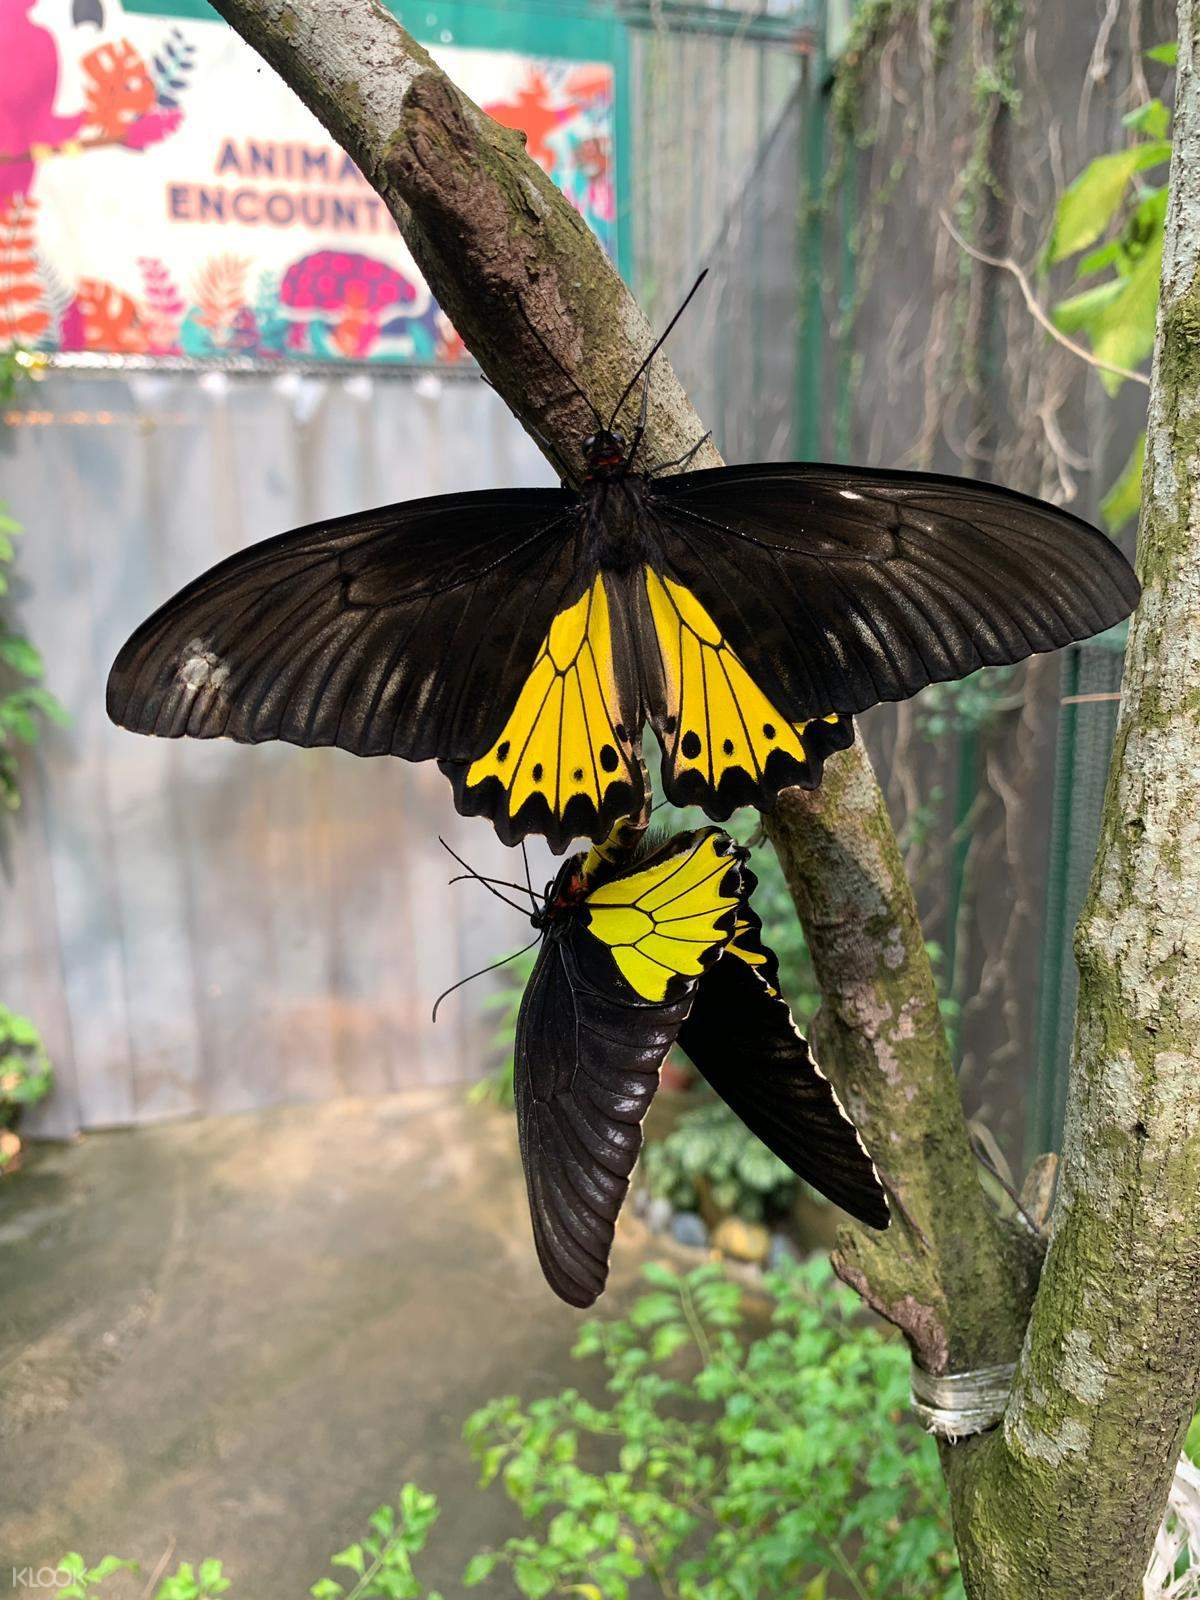 Singapore Butterfly Park and Insect Kingdom